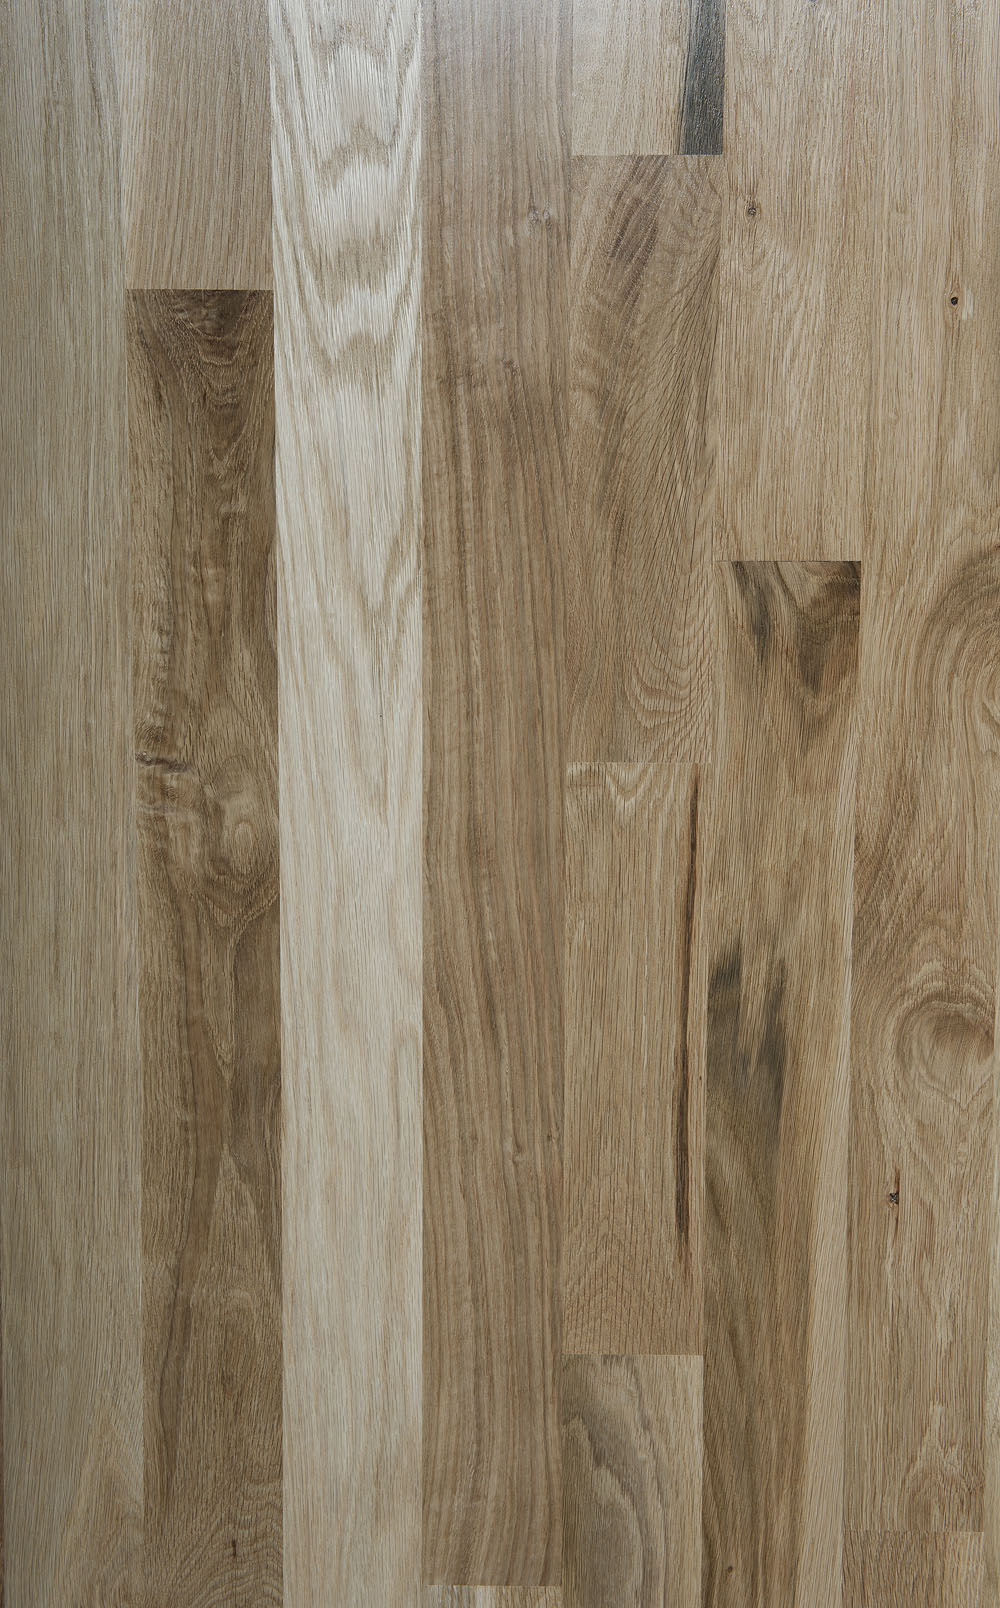 Hardwood Floor Faqs Emerson Hardwood Group